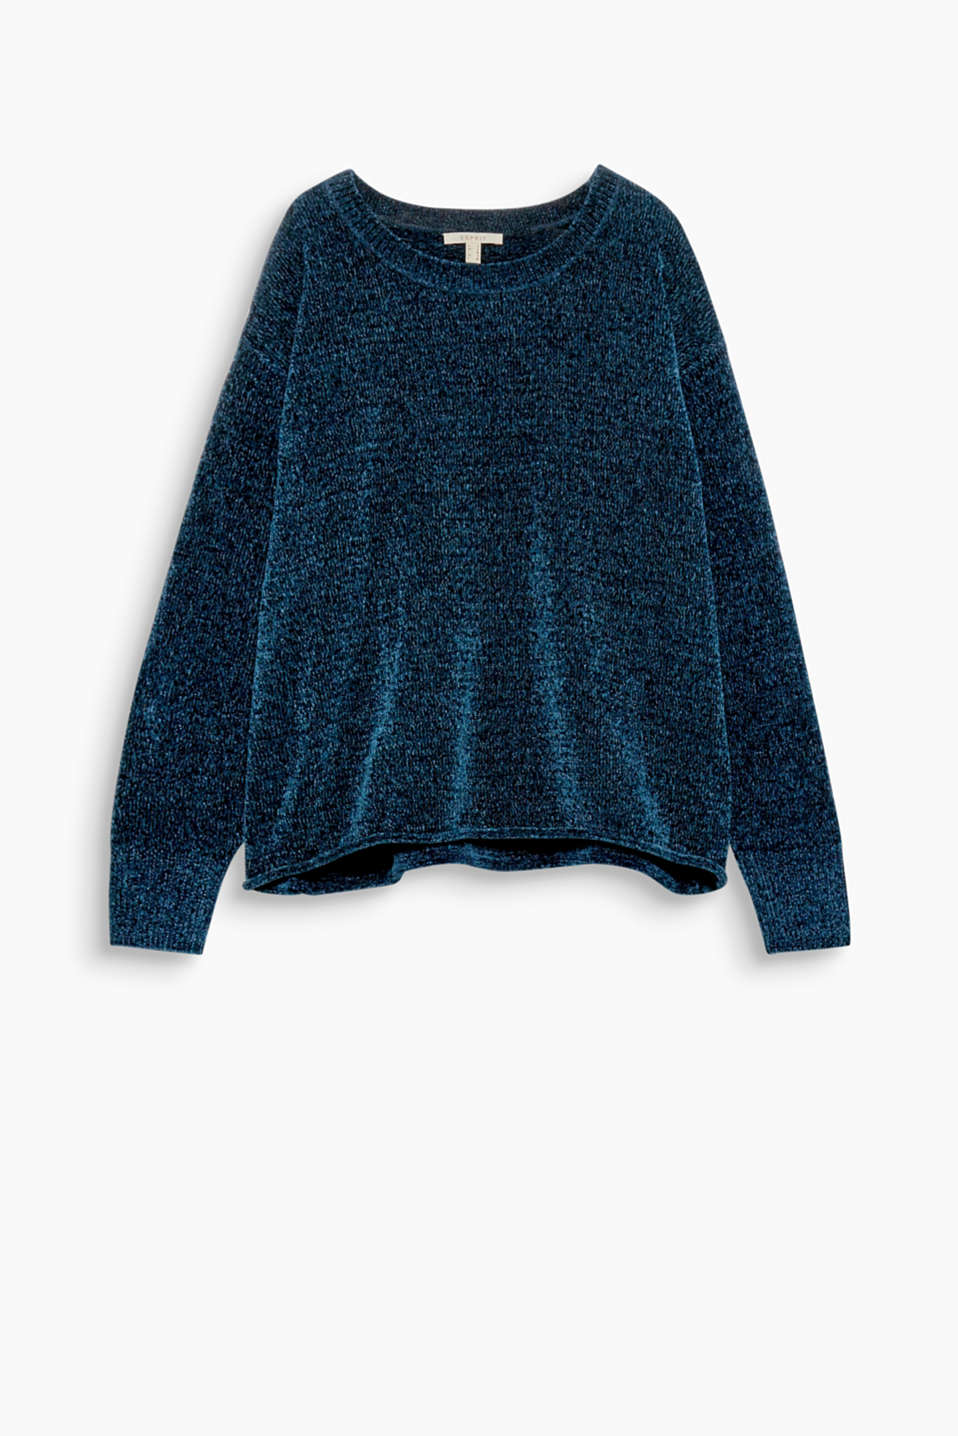 Perfect to snuggle up in: Soft chenille jumper in a relaxed oversized look.